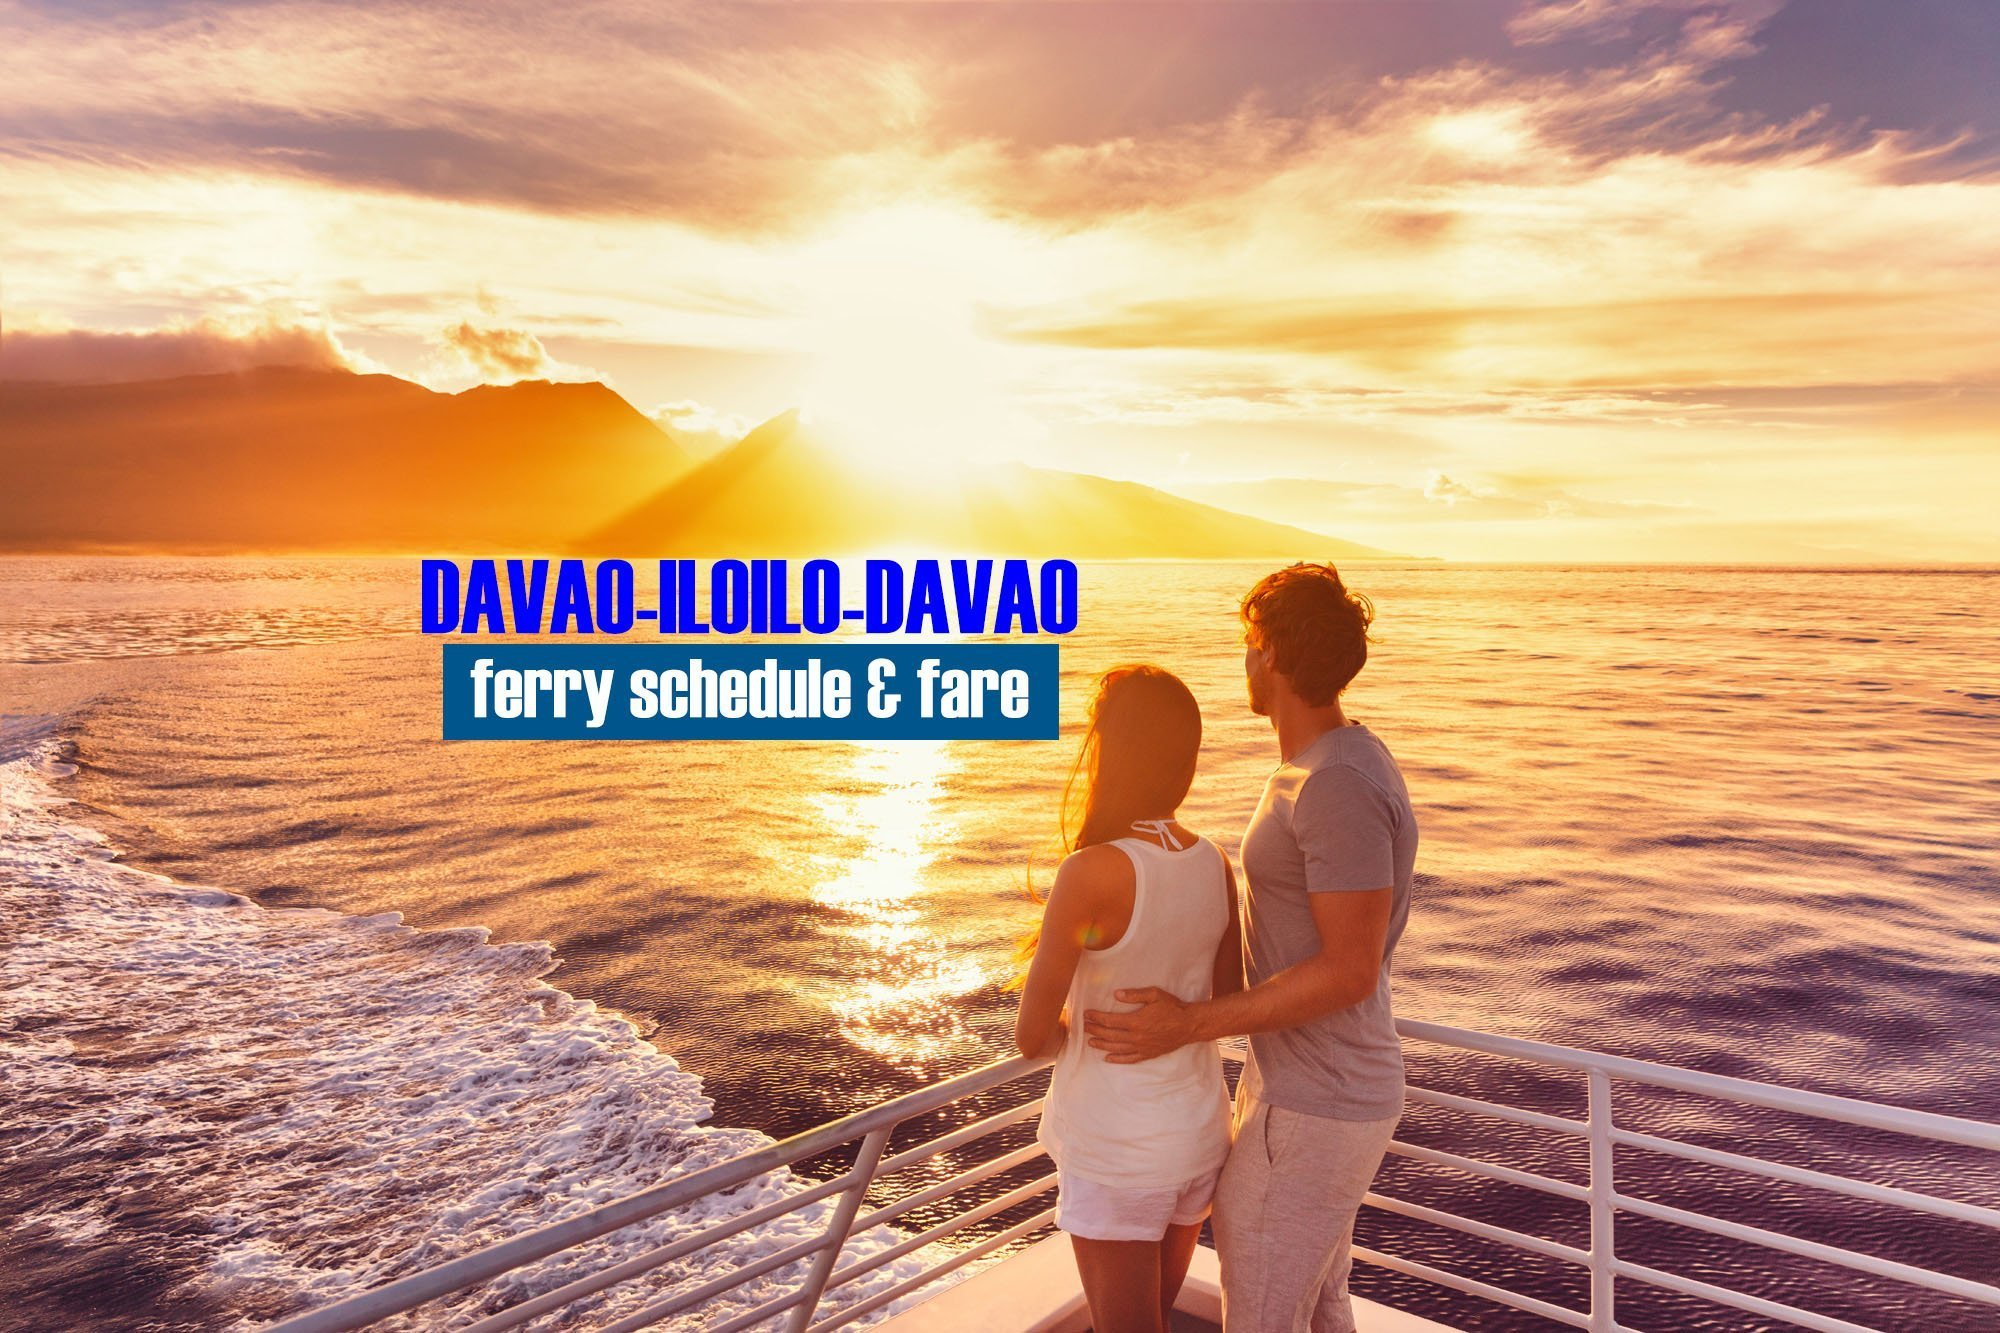 Davao to Iloilo: 2019 Boat Schedule and Fare